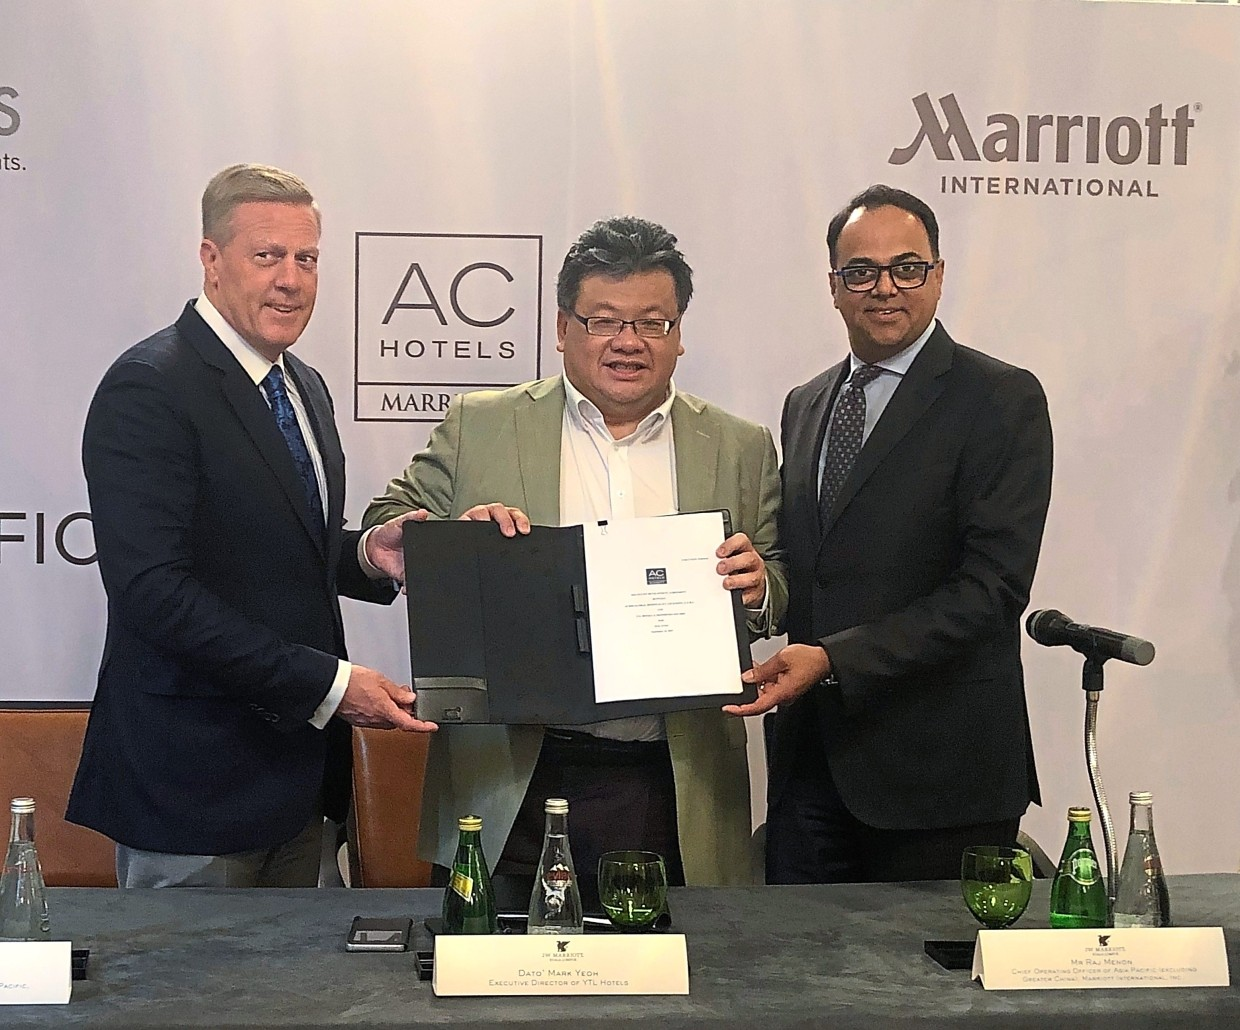 From left: Marriott International Asia Pacific president and managing director Craig Smith, YTL Hotels executive director Datuk Mark Yeoh and Marriott International chief operating officer Raj Menon.